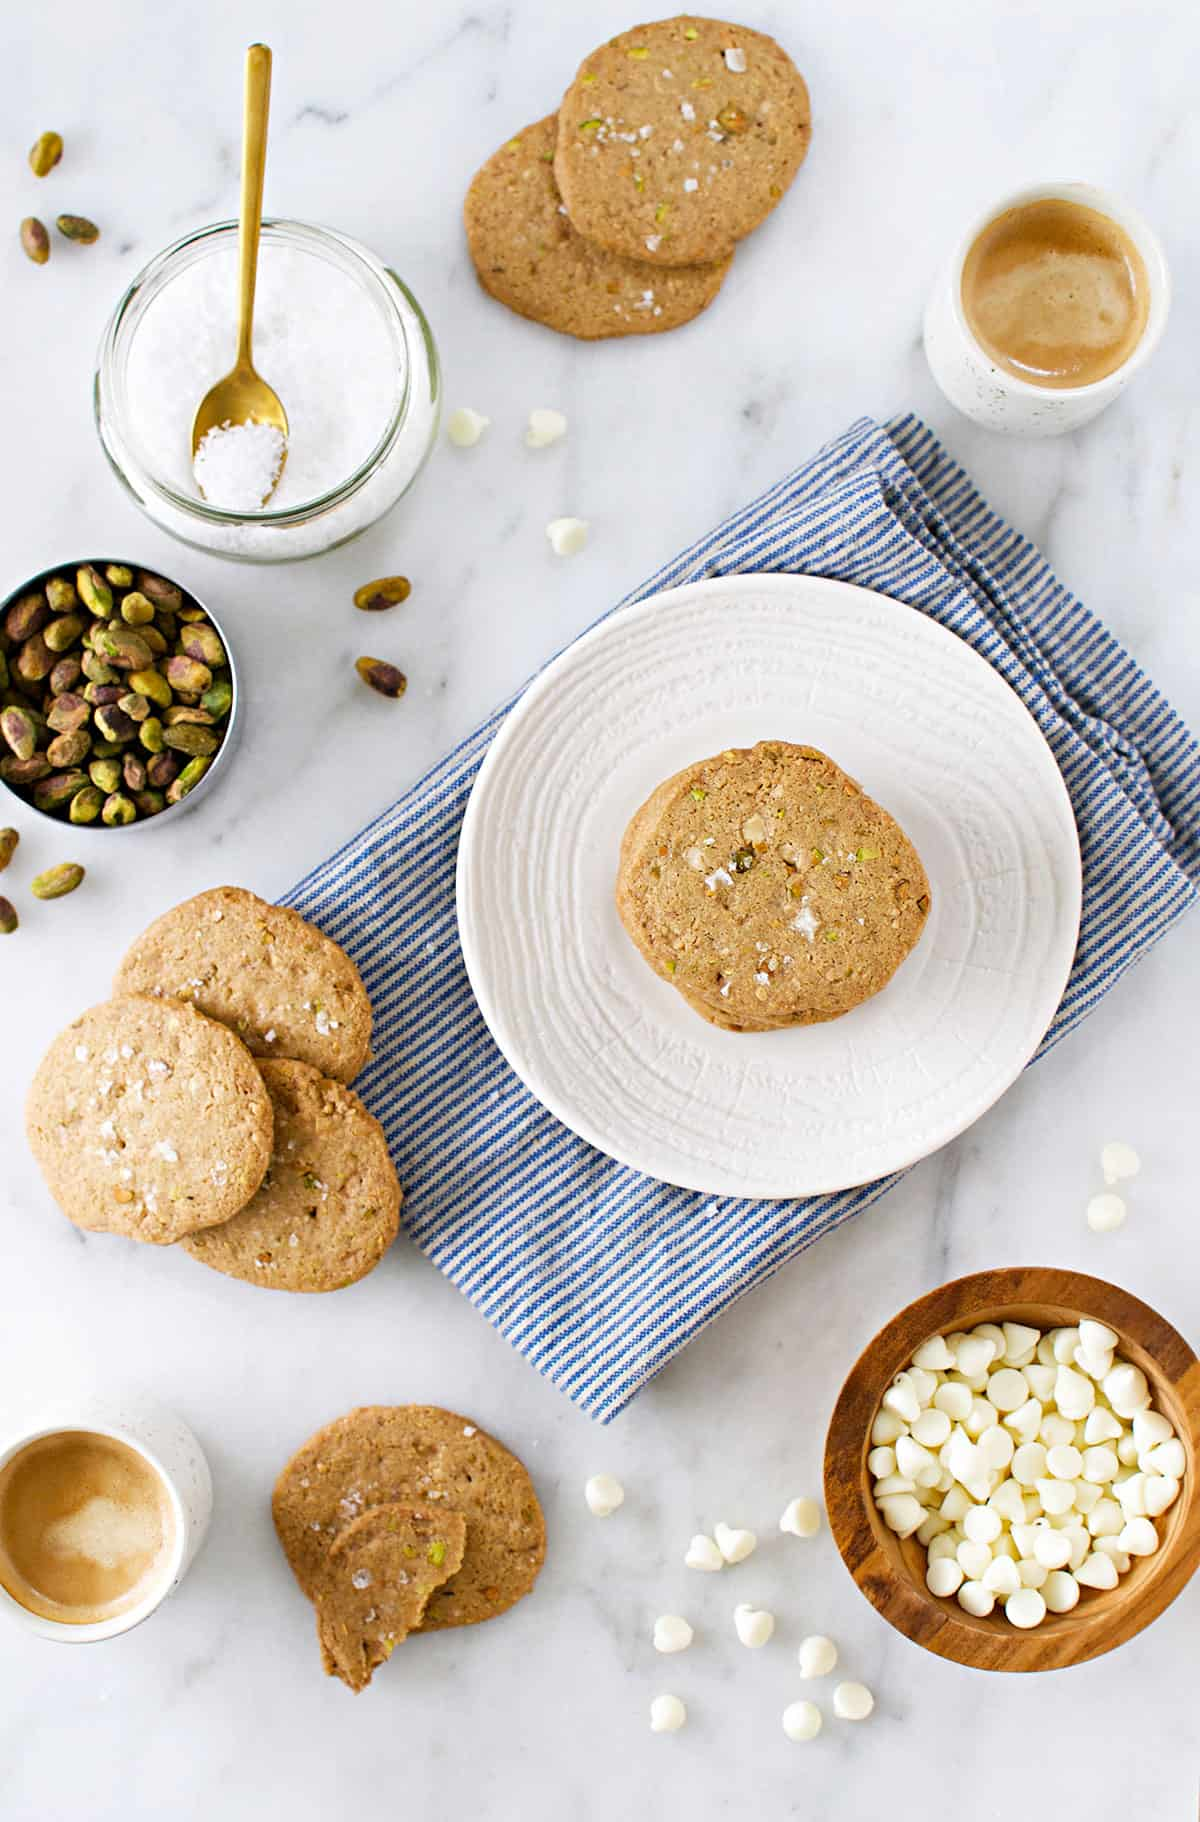 White Chocolate Pistachio Cookie Crisps recipe - egg-free, gluten-free white chocolate cookies studded with salty pistachios. Positively addictive! (via thepigandquill.com) #sweets #dessert #baking